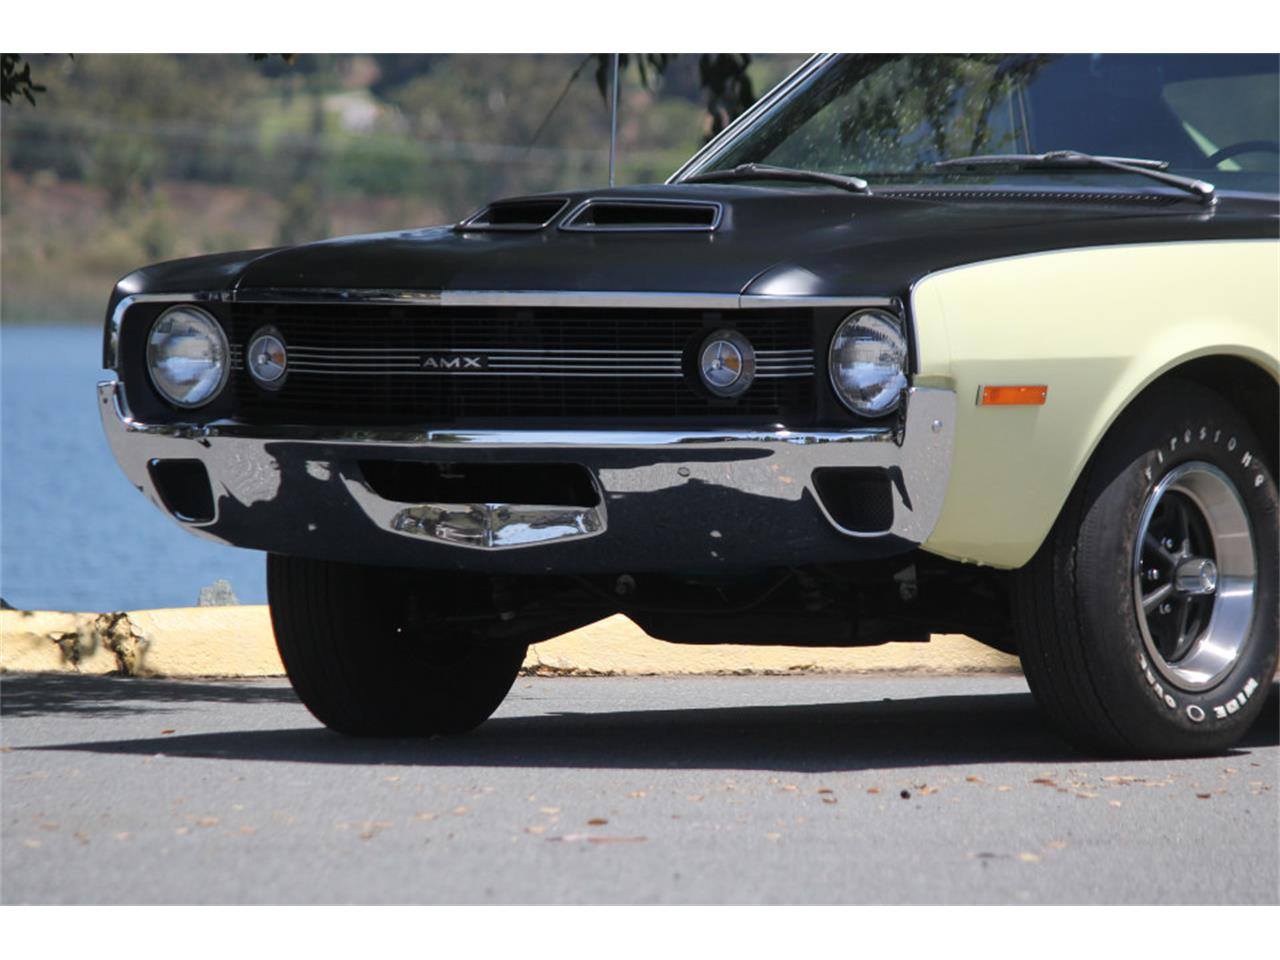 Large Picture of Classic 1970 AMX located in San Diego  California - $59,500.00 Offered by Precious Metals - QCFB